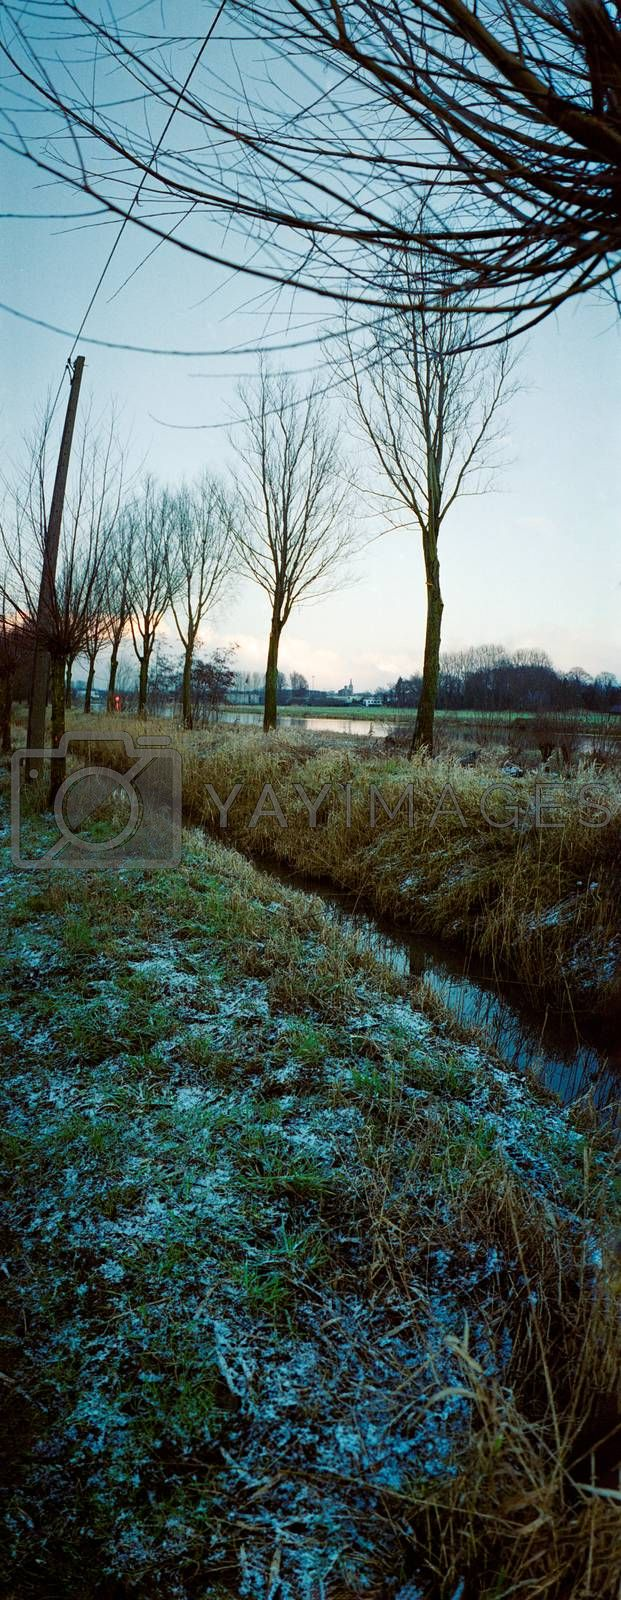 vertical panorama of riverbank with trees in winter in blue light of dawn with a small coverage of snow between the grass